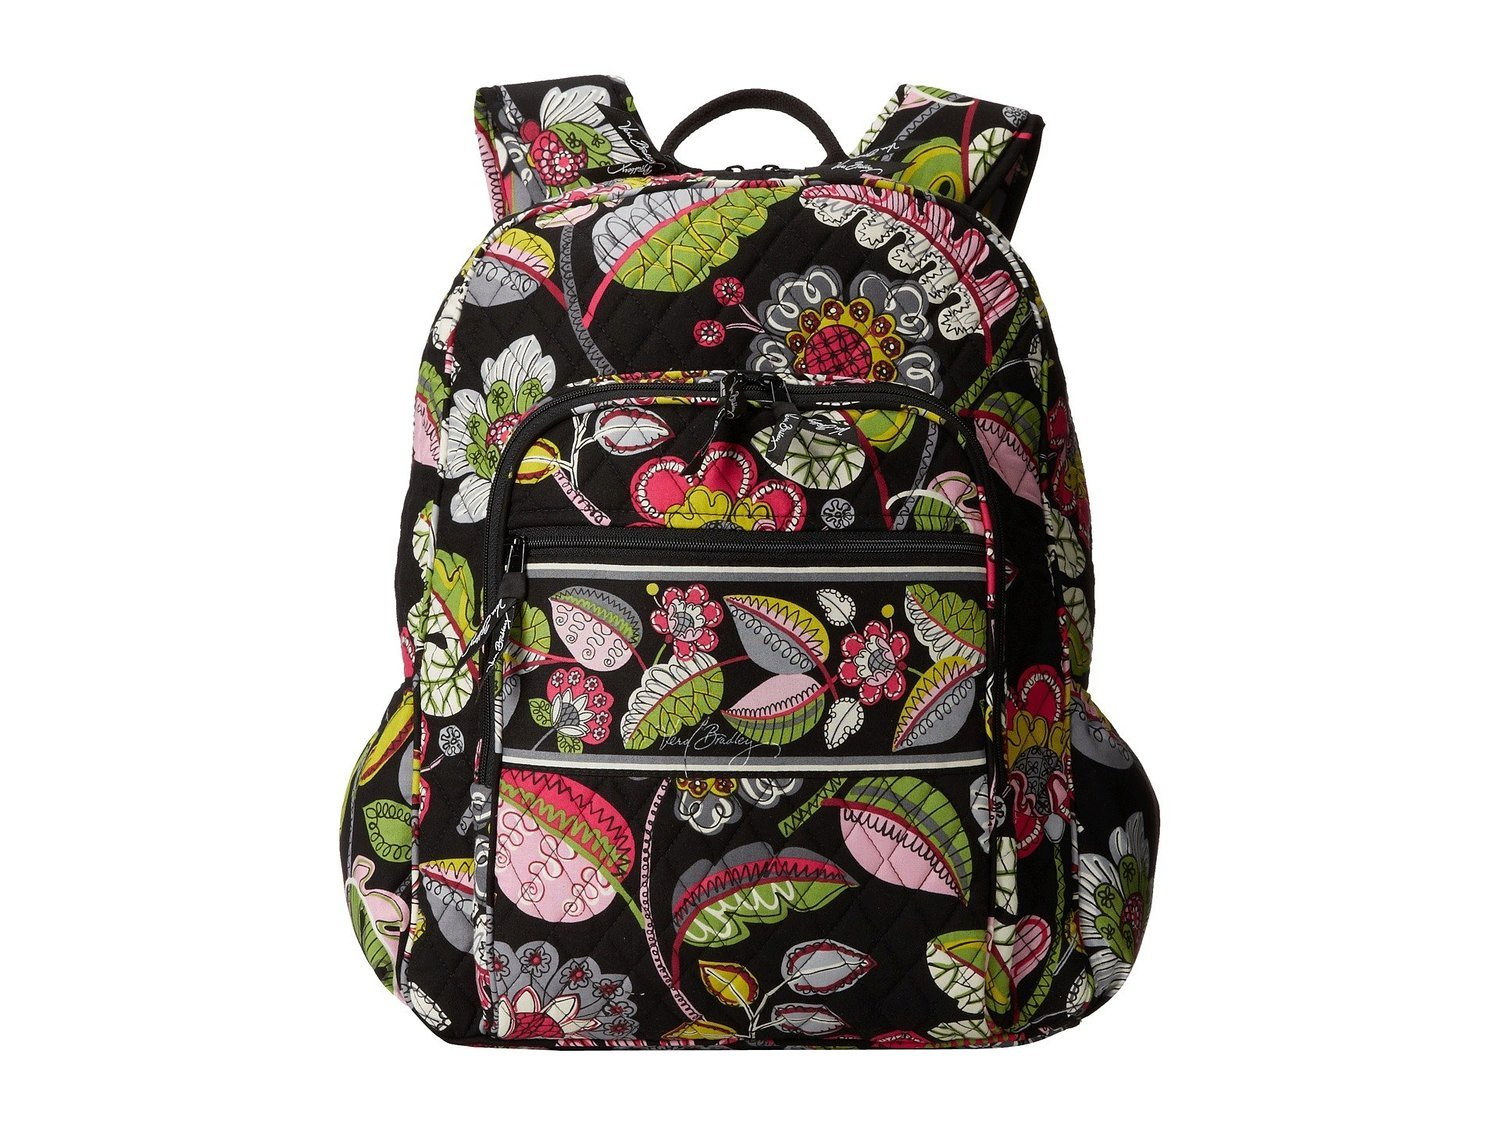 5a8e78194da Burgundy Pink Campus Backpack- Fenix Toulouse Handball